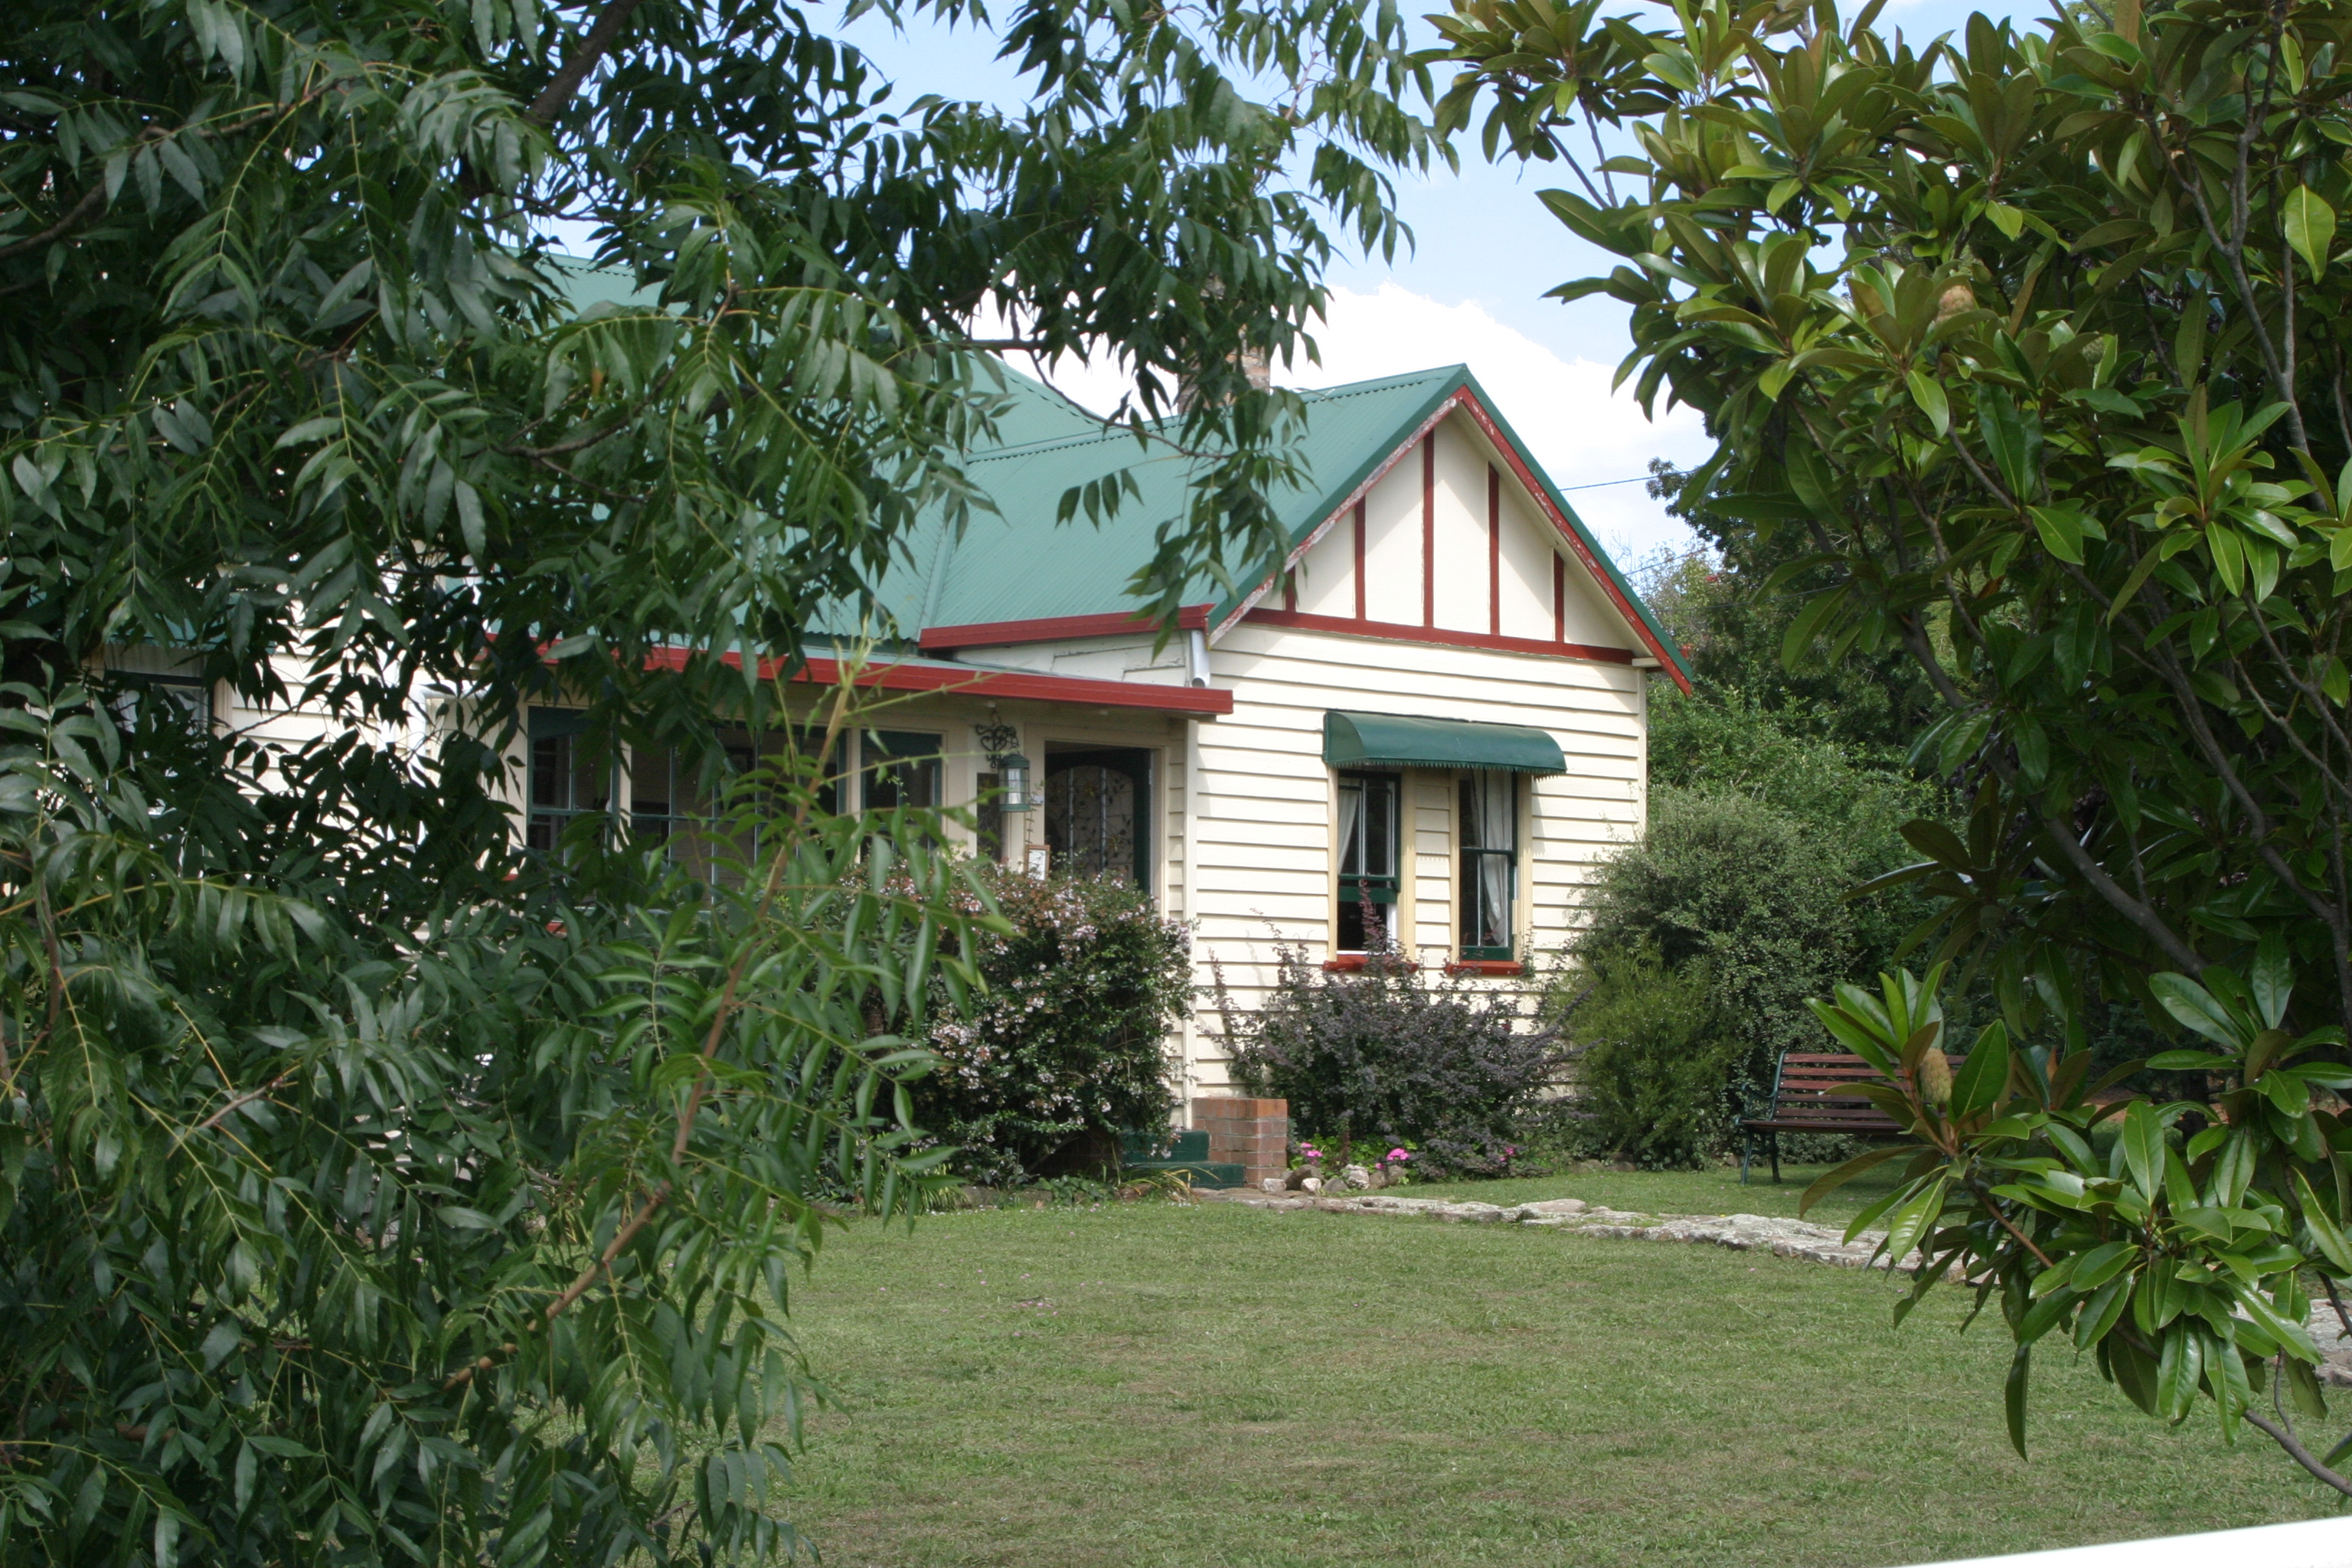 The Sharron Park homestead